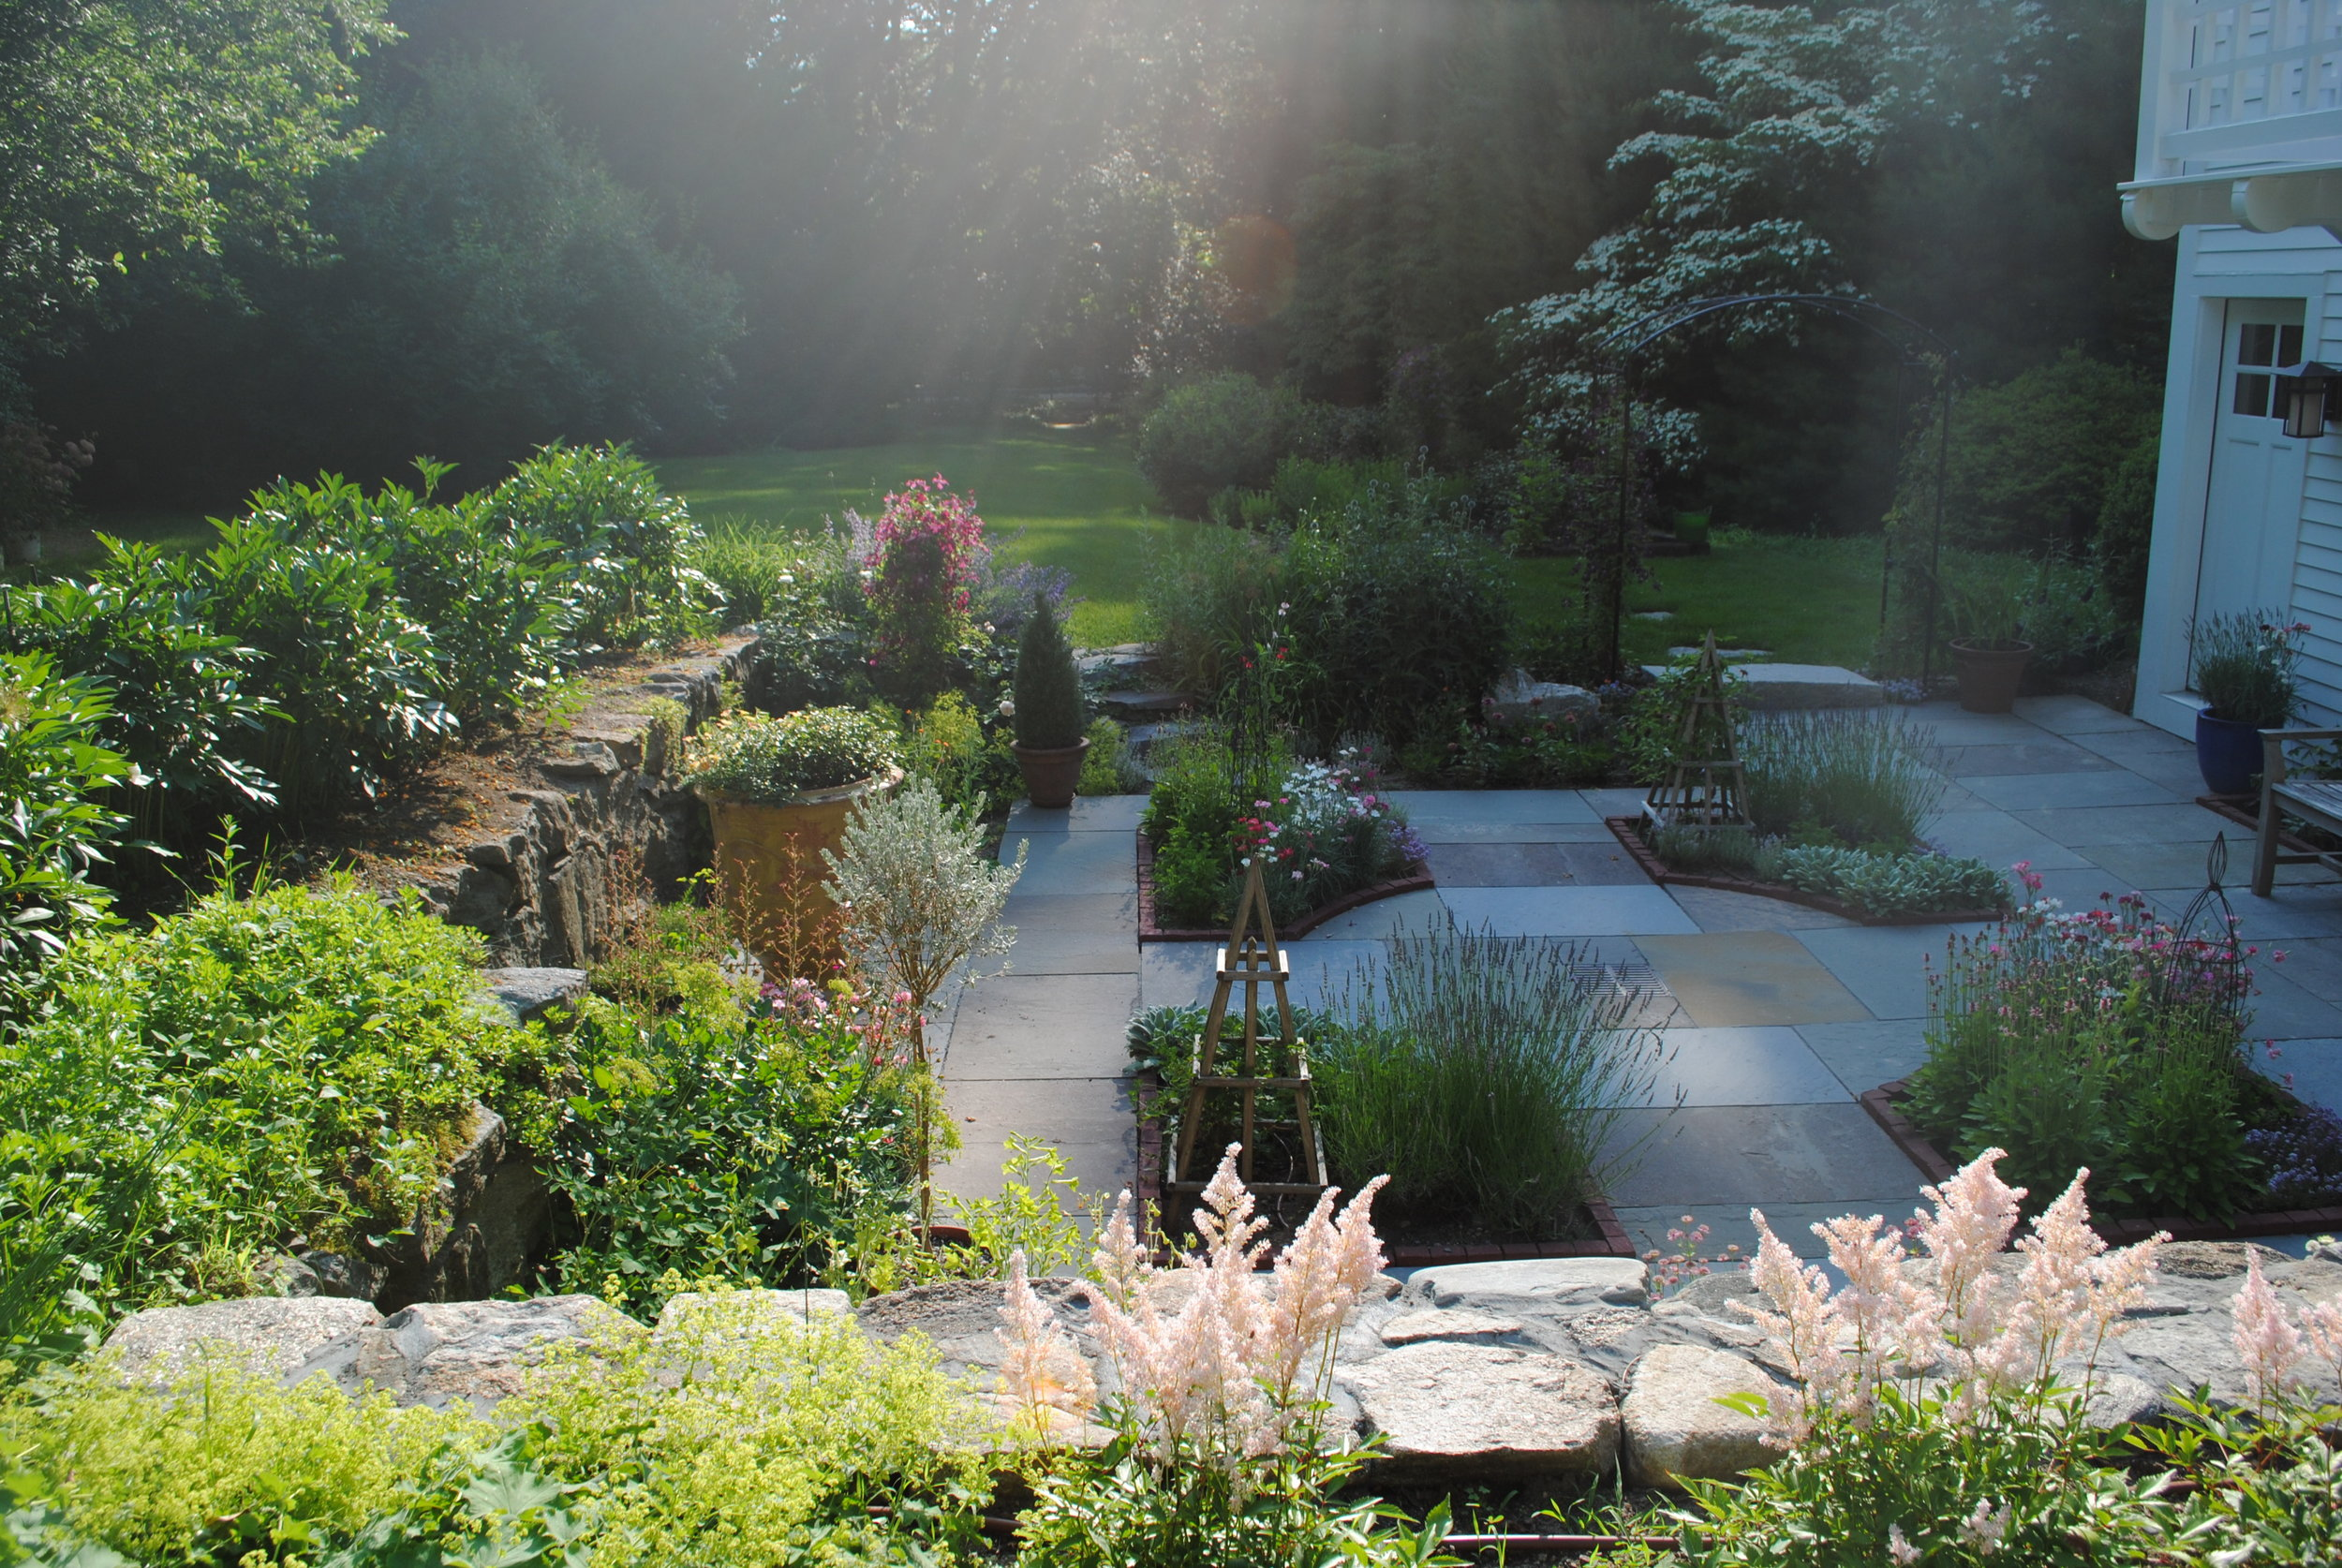 A dilapidated corrugated iron garage at side of garden is rebuilt and a formal herb garden with bluestone paving and beds is created in the sunken area.